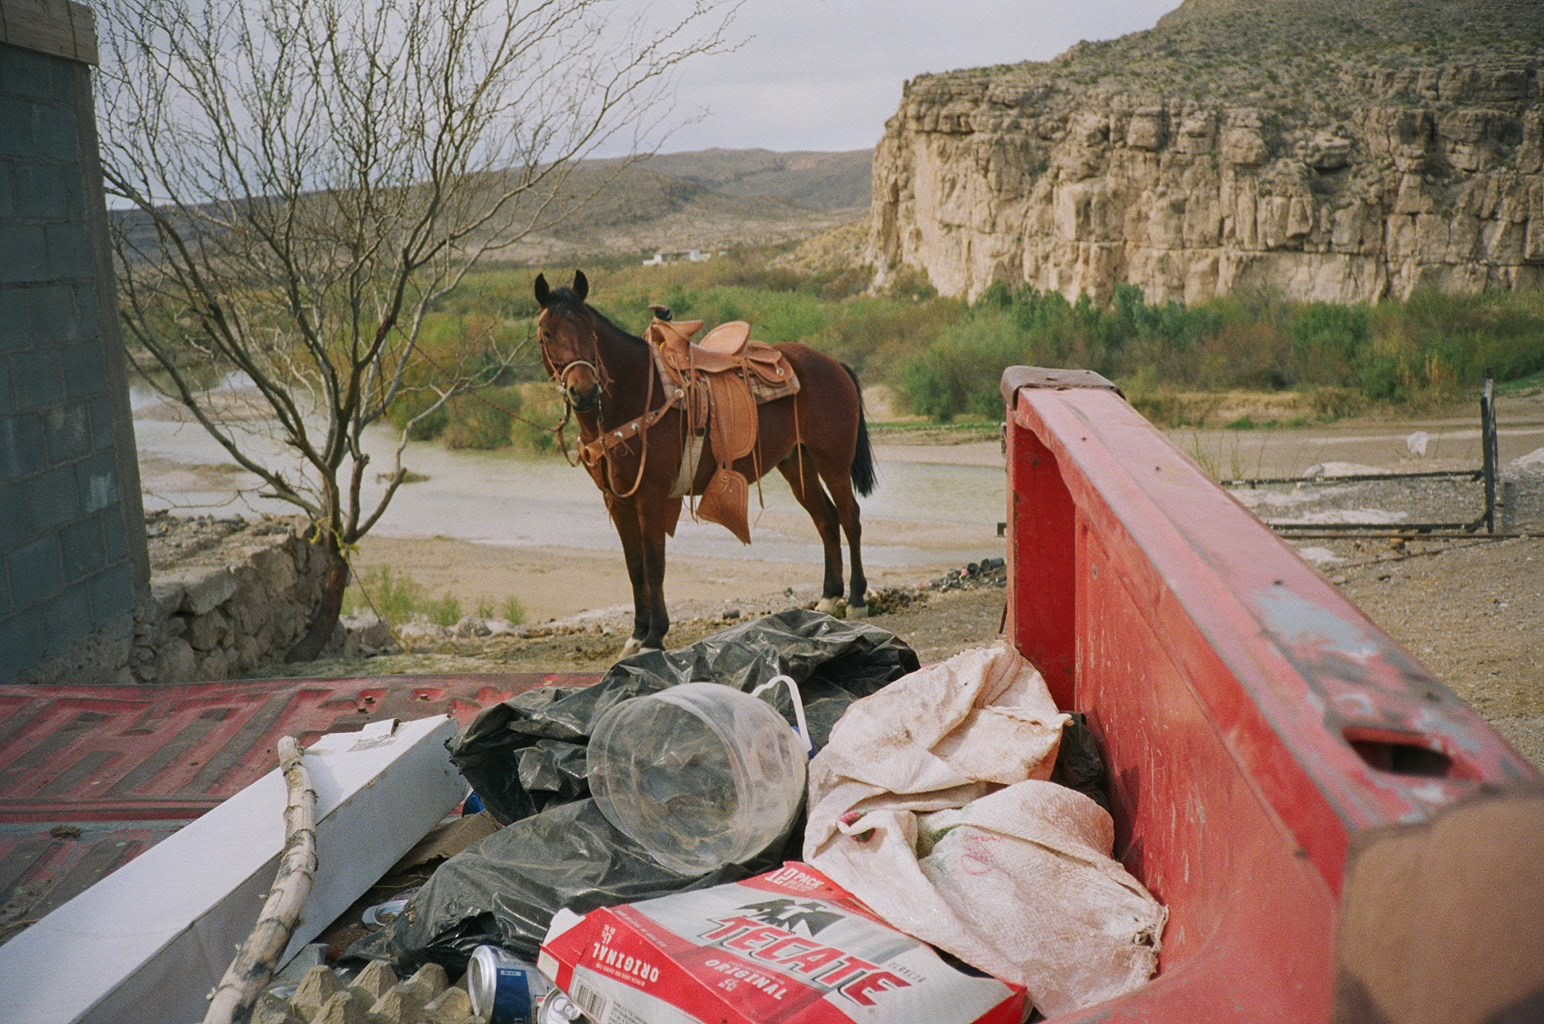 The Horse of Boquillas, Mexico, 2017